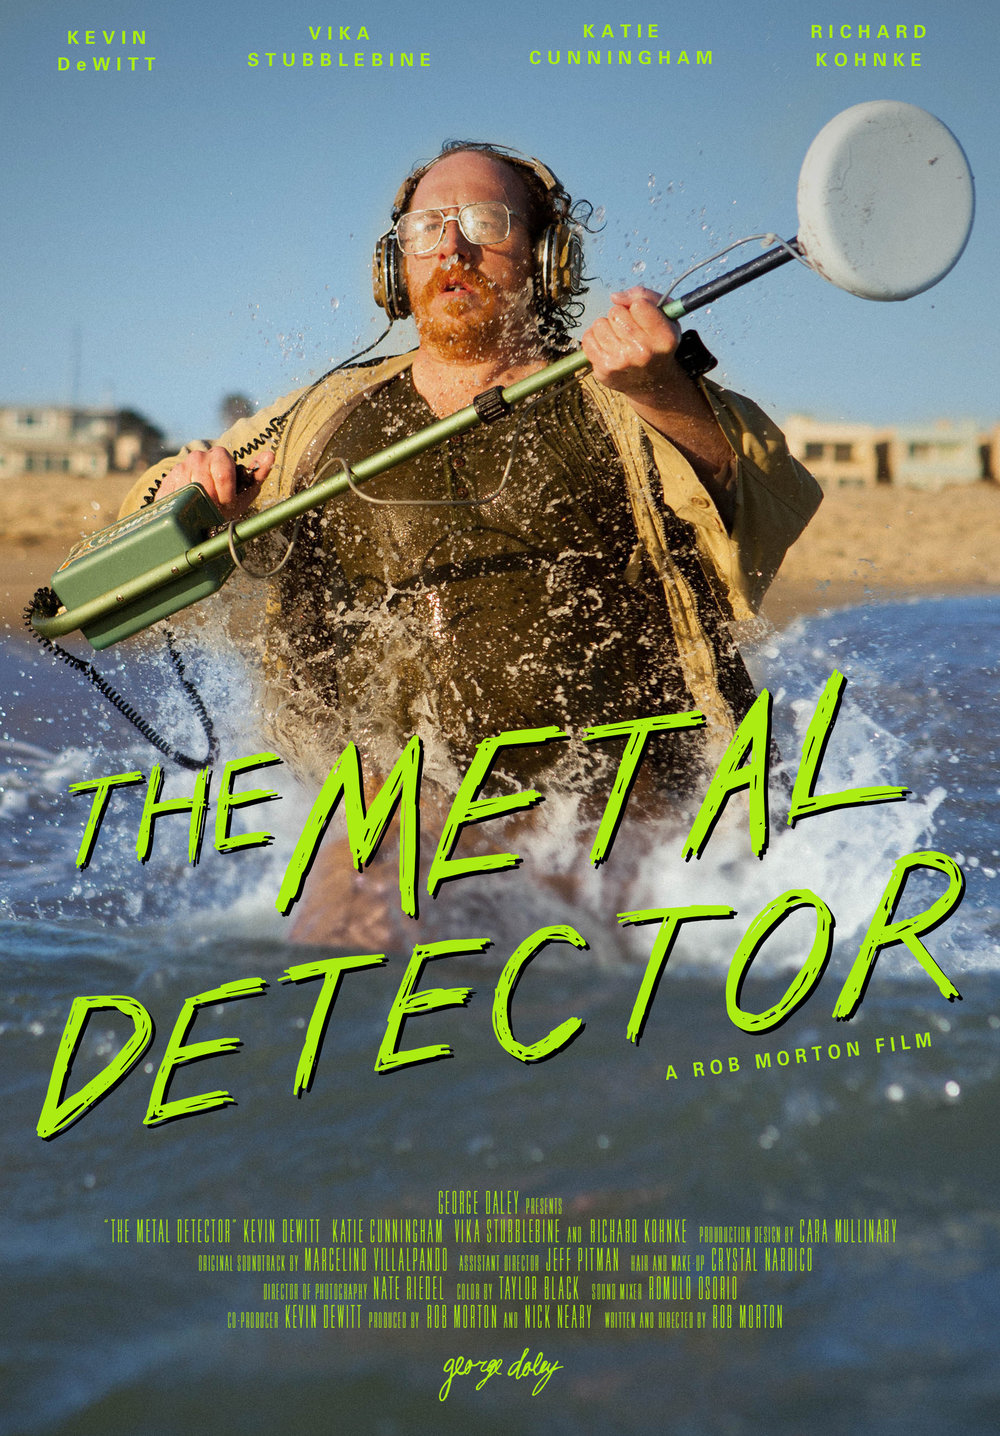 rob morton // the metal detector // short film